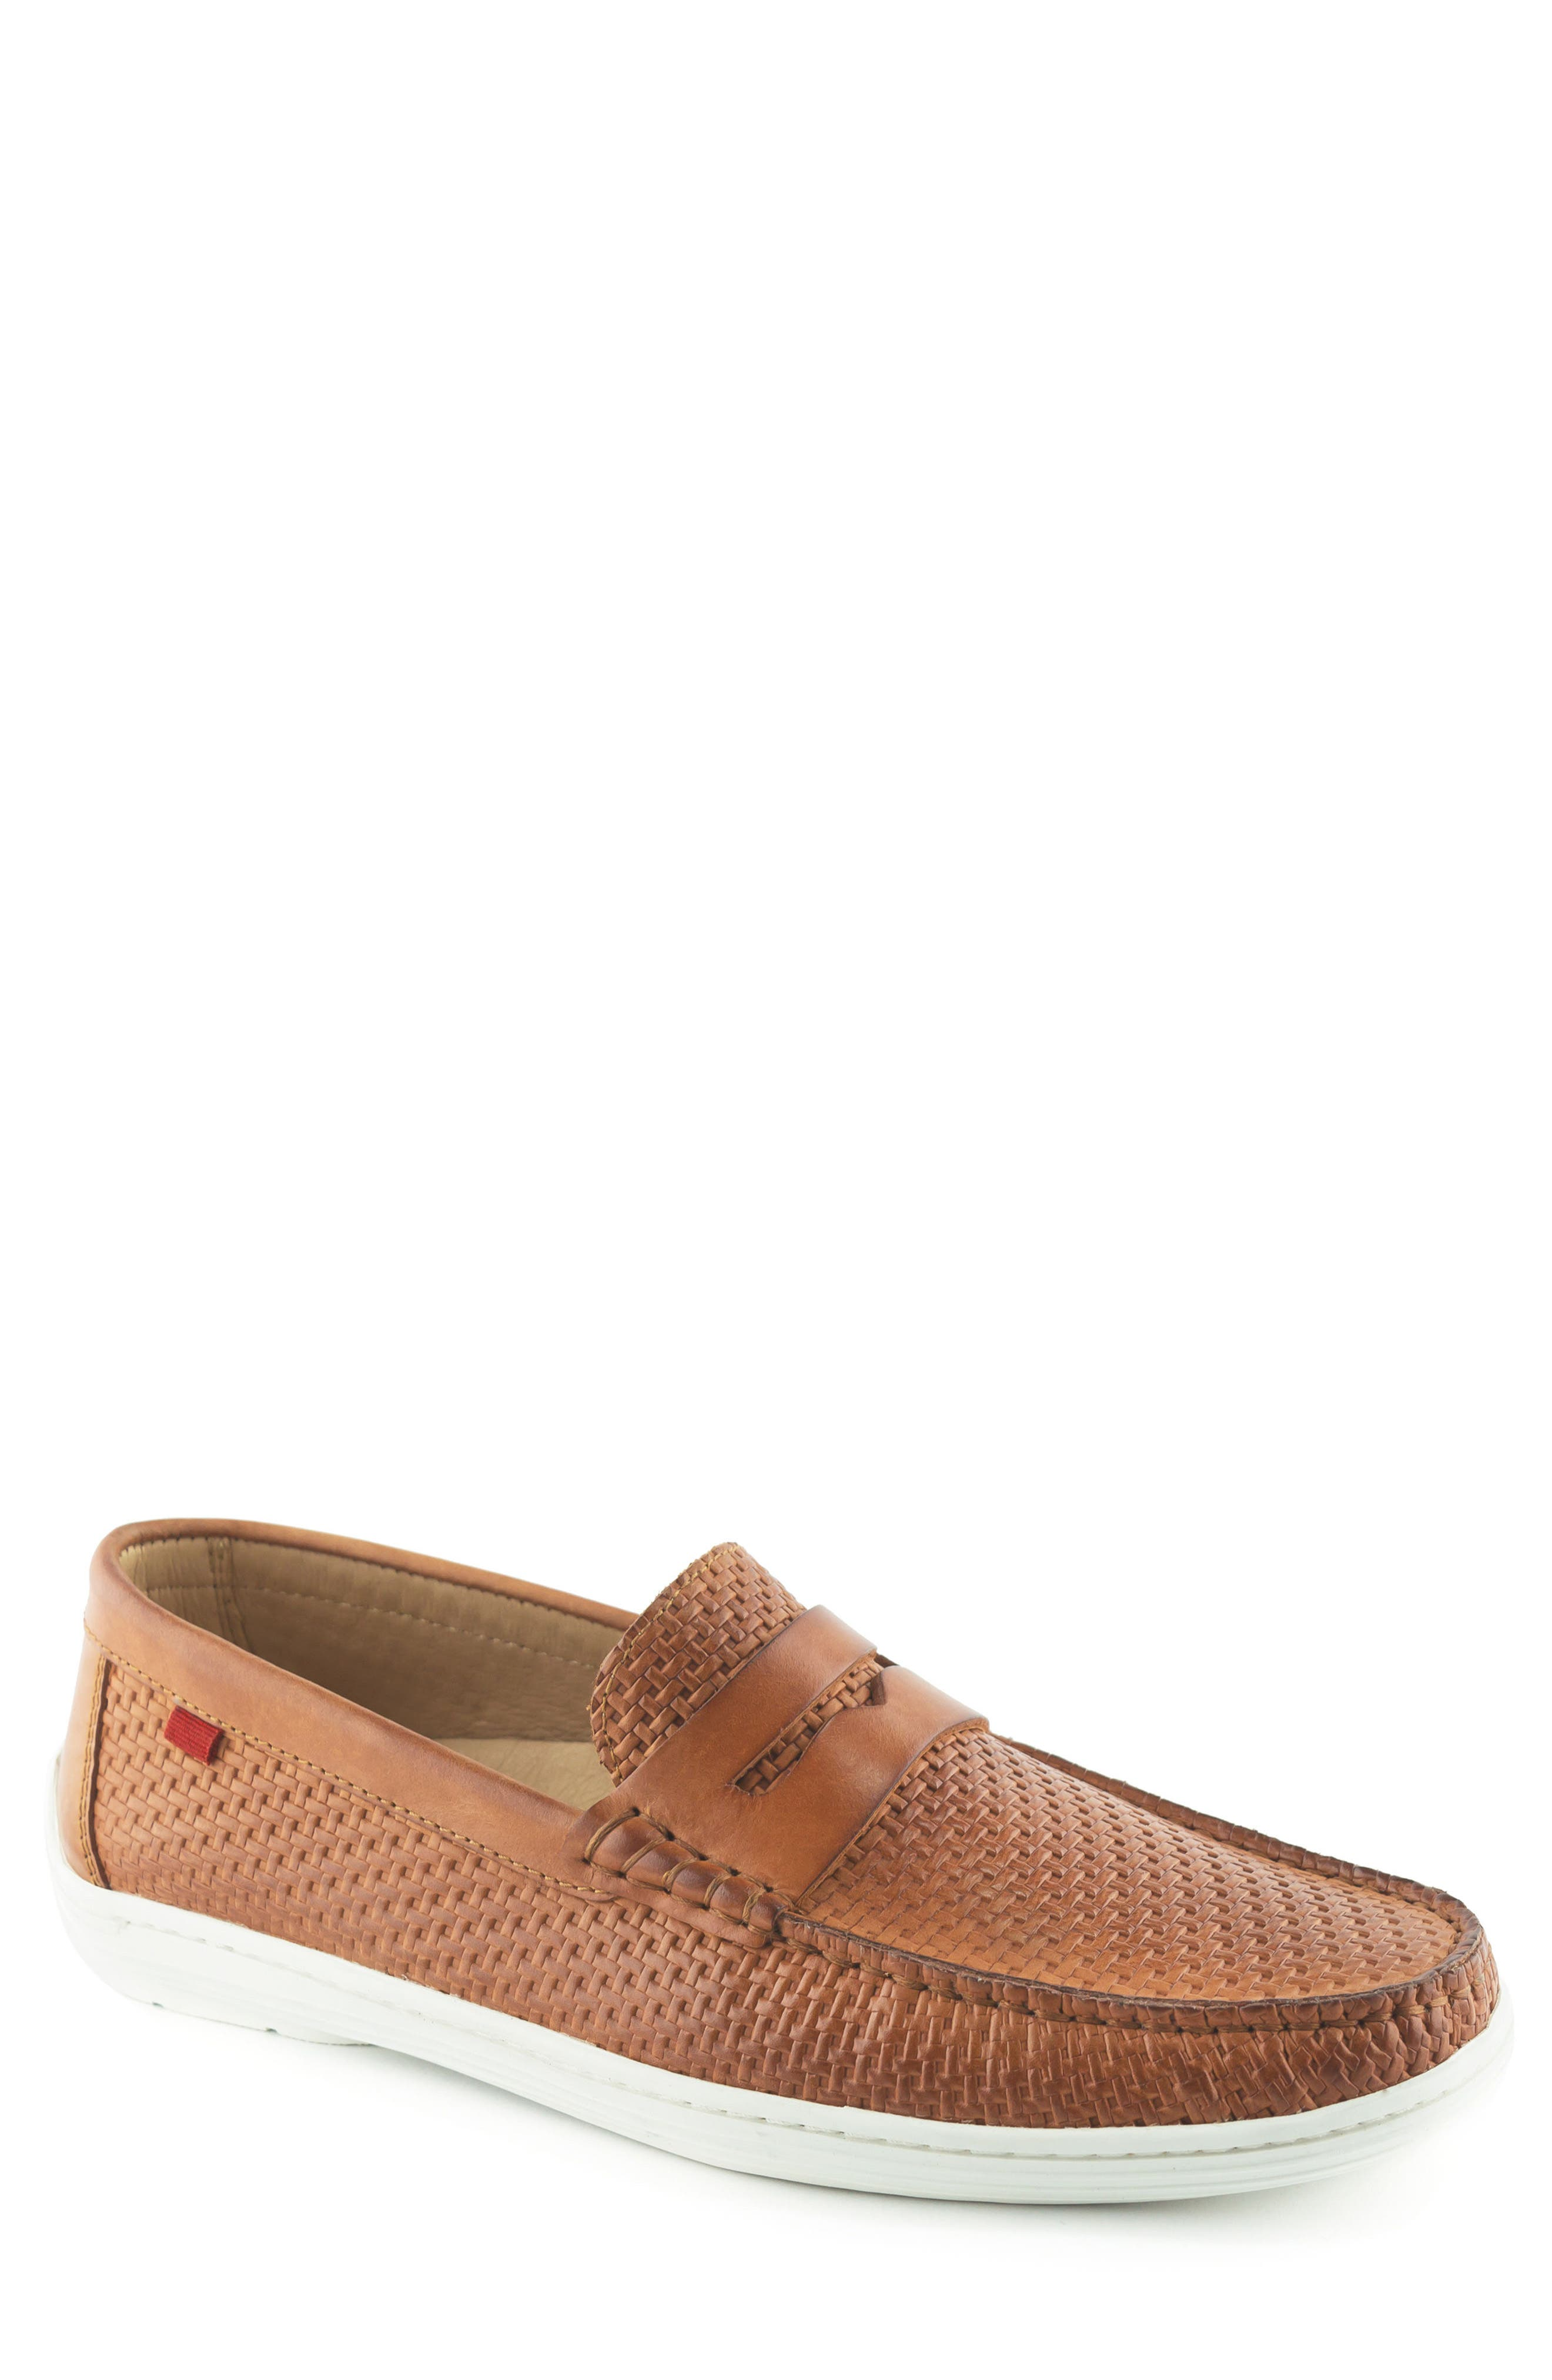 Atlantic Penny Loafer,                             Main thumbnail 4, color,